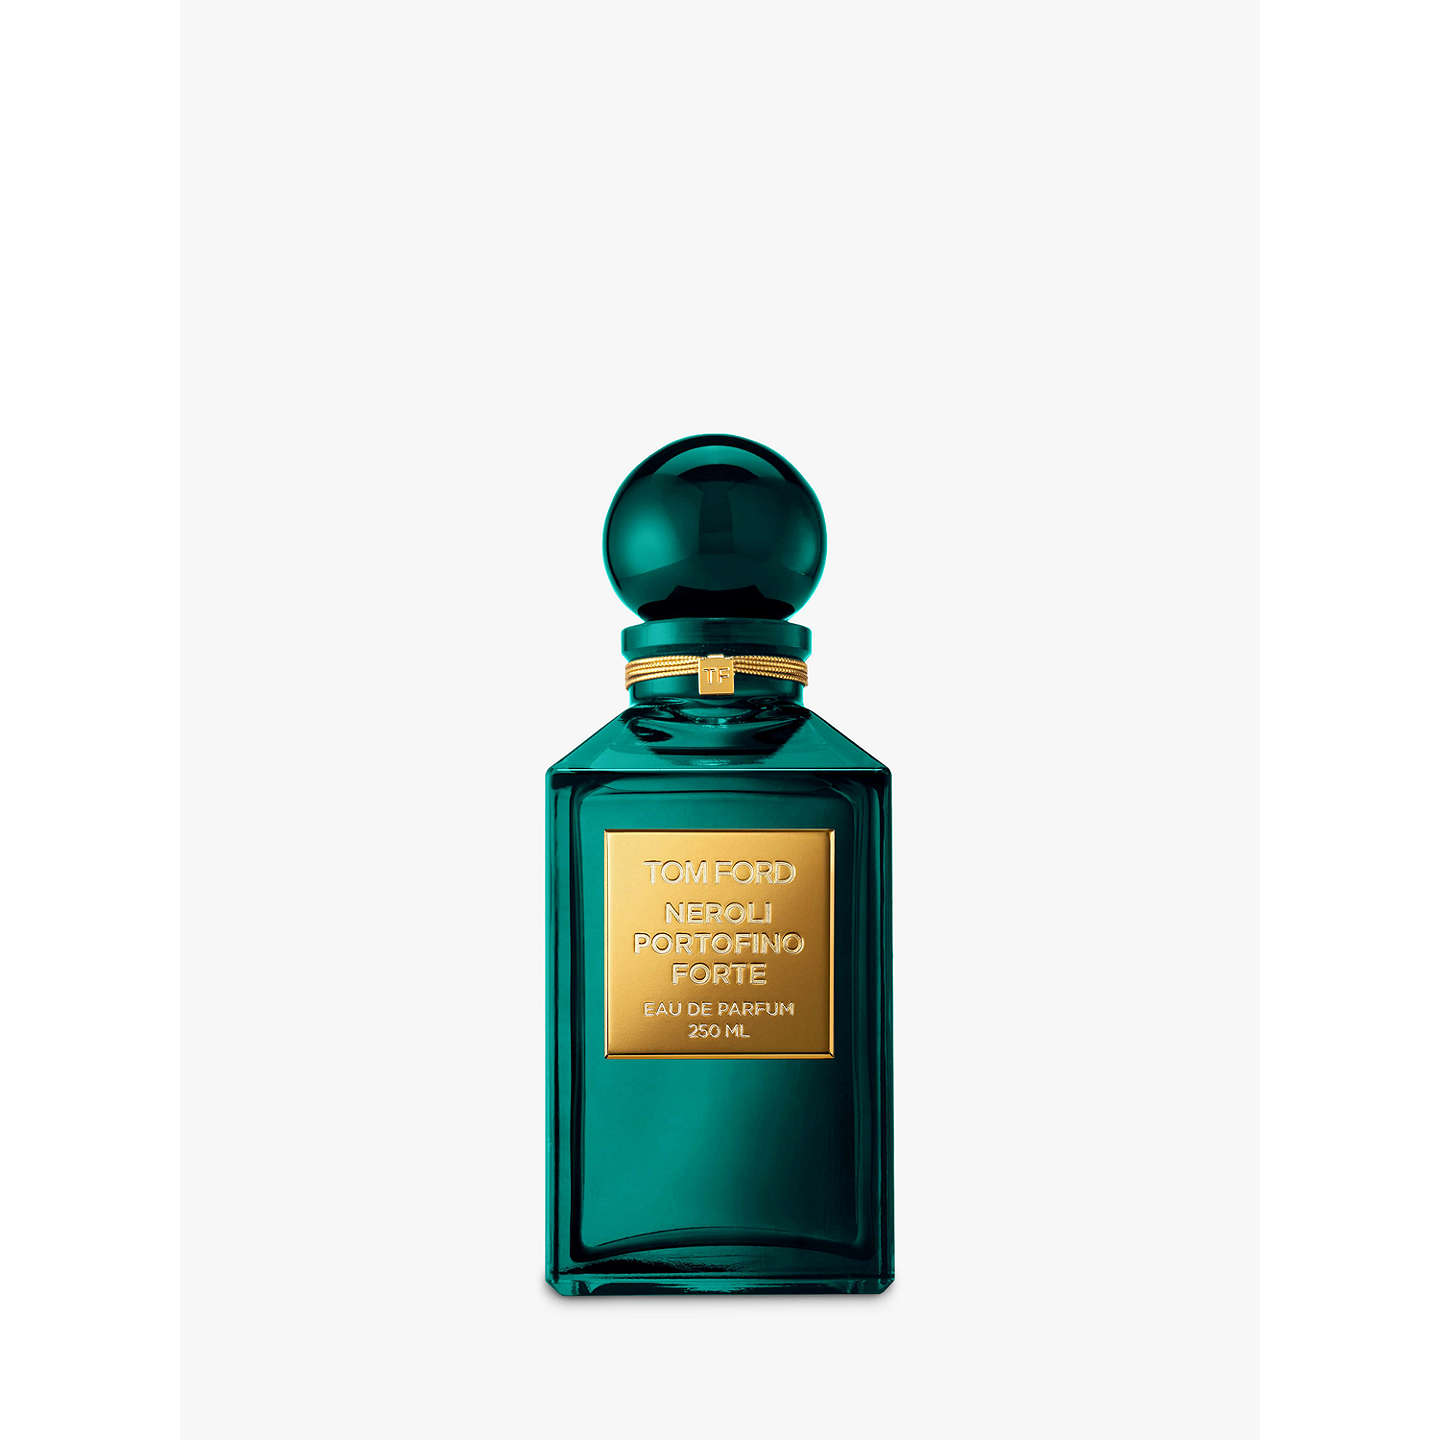 BuyTOM FORD Private Blend Neroli Portofino Forte Eau de Parfum, 250ml Online at johnlewis.com